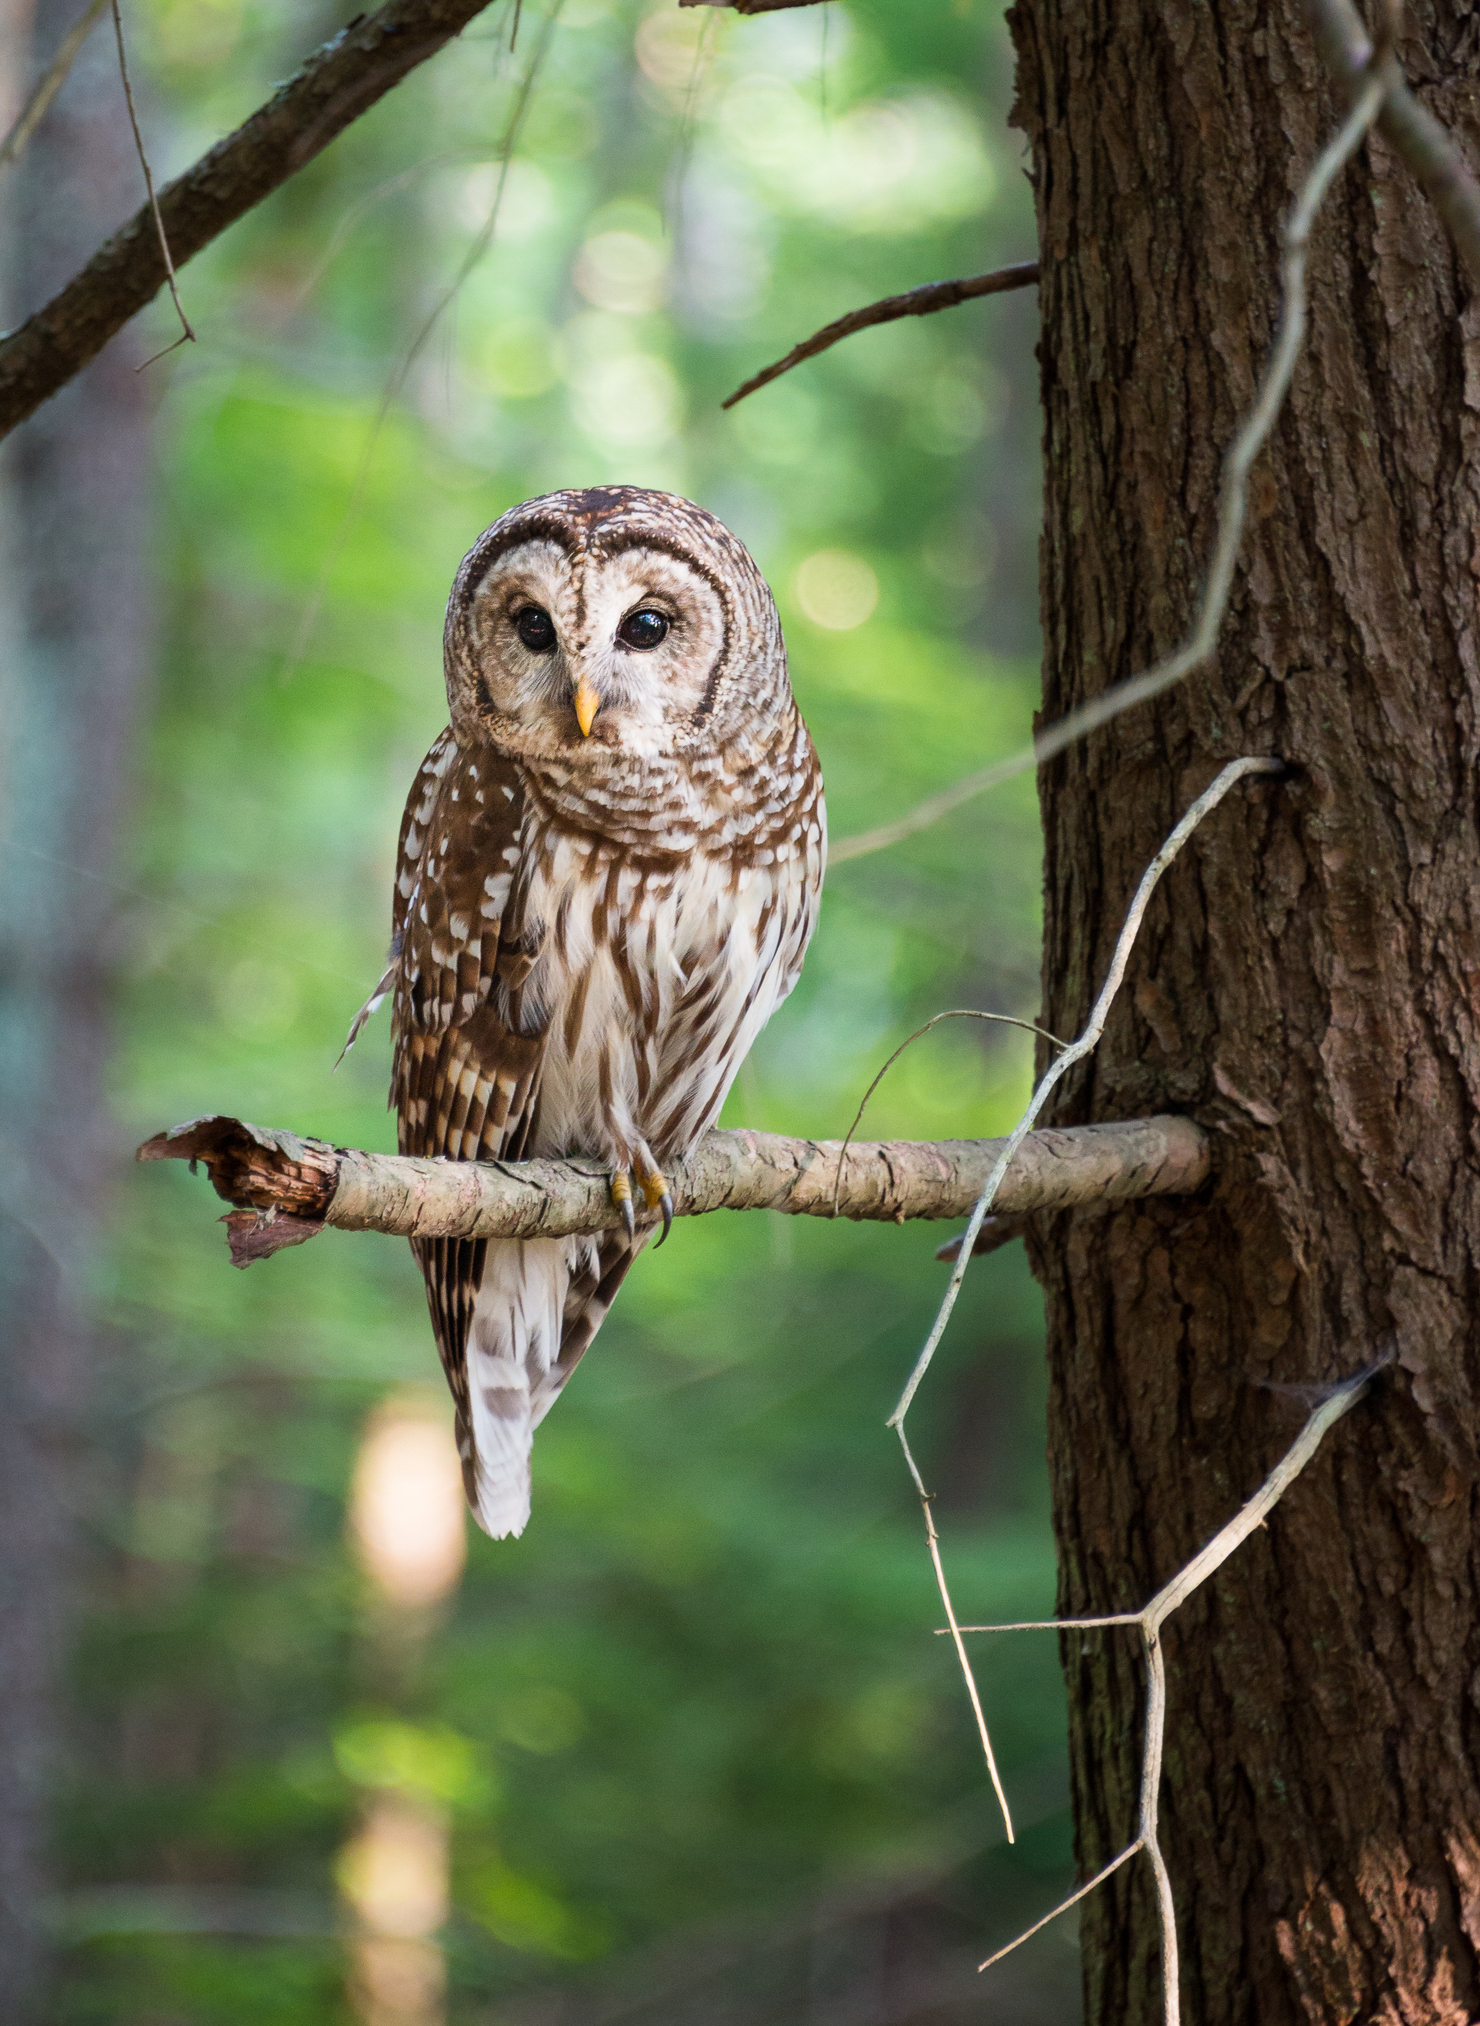 Barred owls (Strix varia) compete with northern spotted owls (Strix occidentalis) for nest sites and food resources in the Pacific Northwest, a region once occupied by only spotted owls.